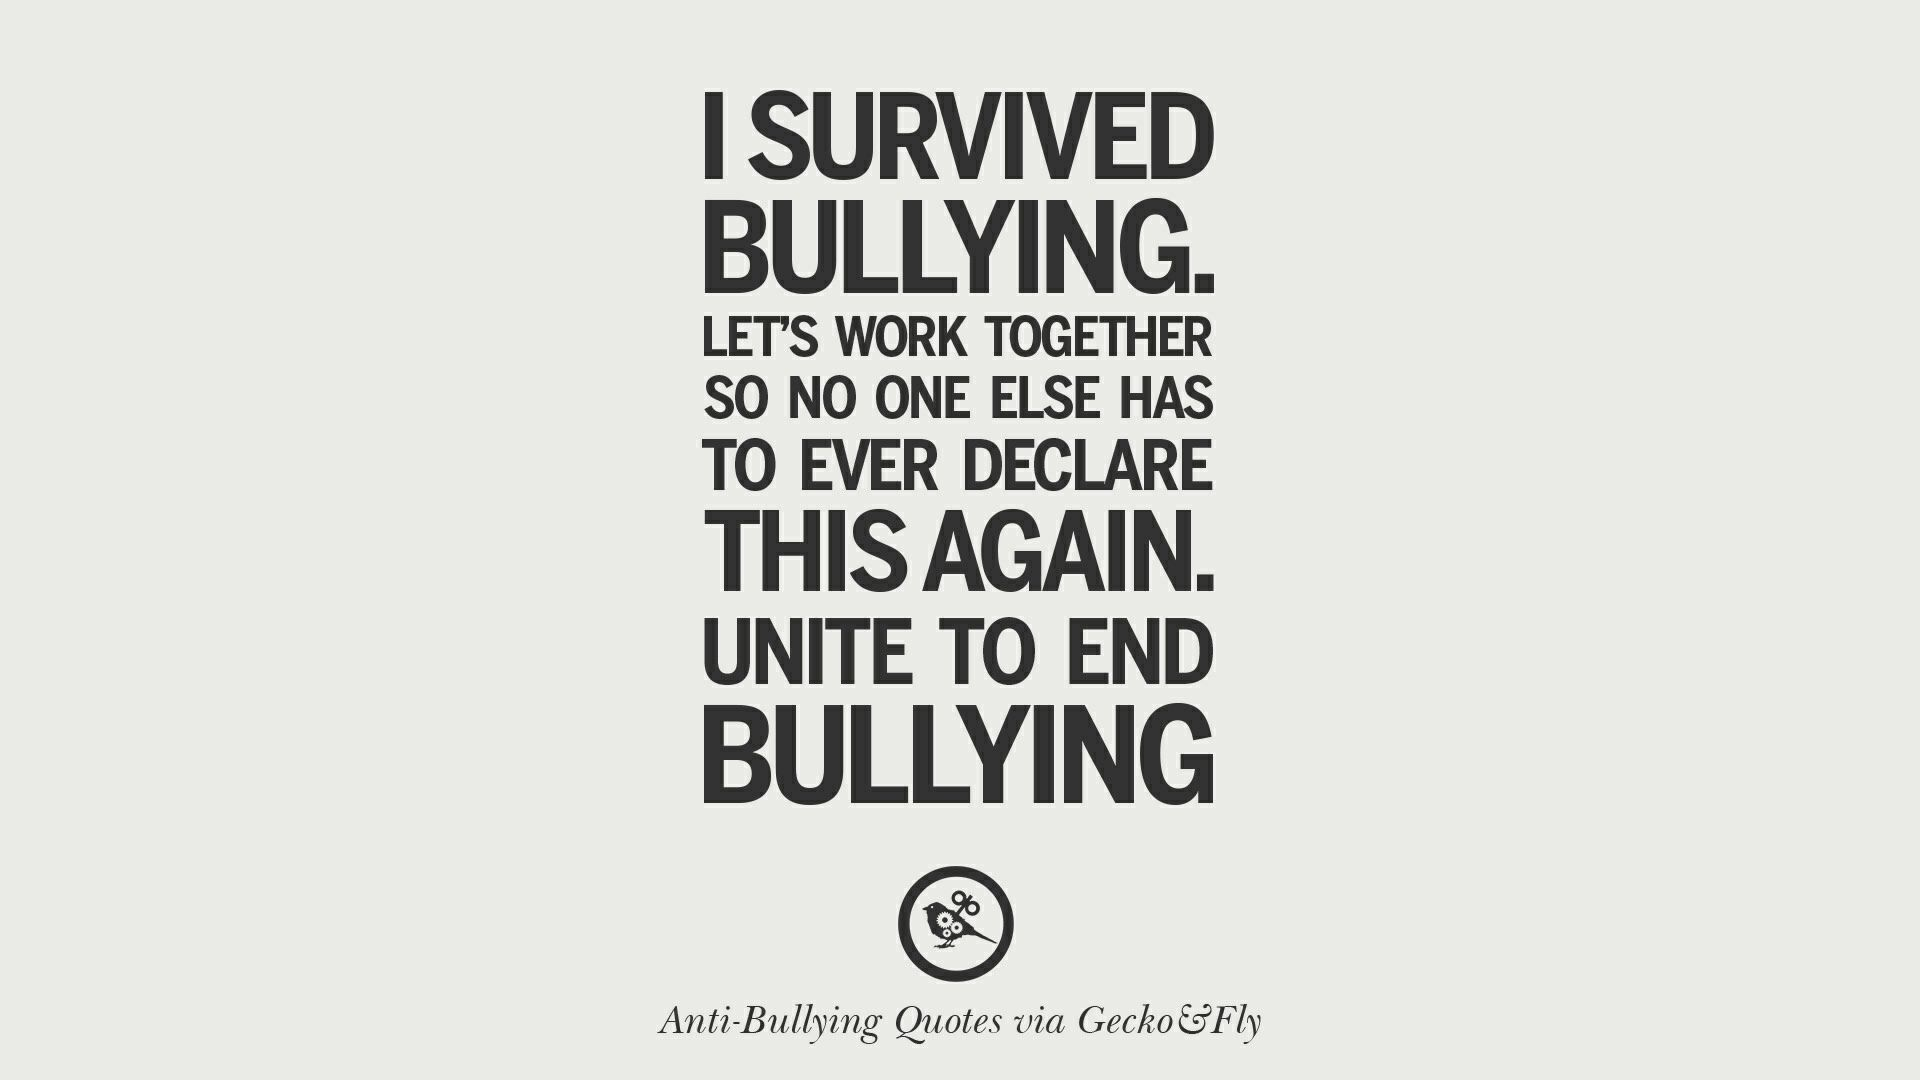 Let S Unite To End Bullying Bullying Antibullying Survivors Teamwork Unifiedcommunication Bullying Quotes Cyber Bullying Quotes Anti Bully Quotes